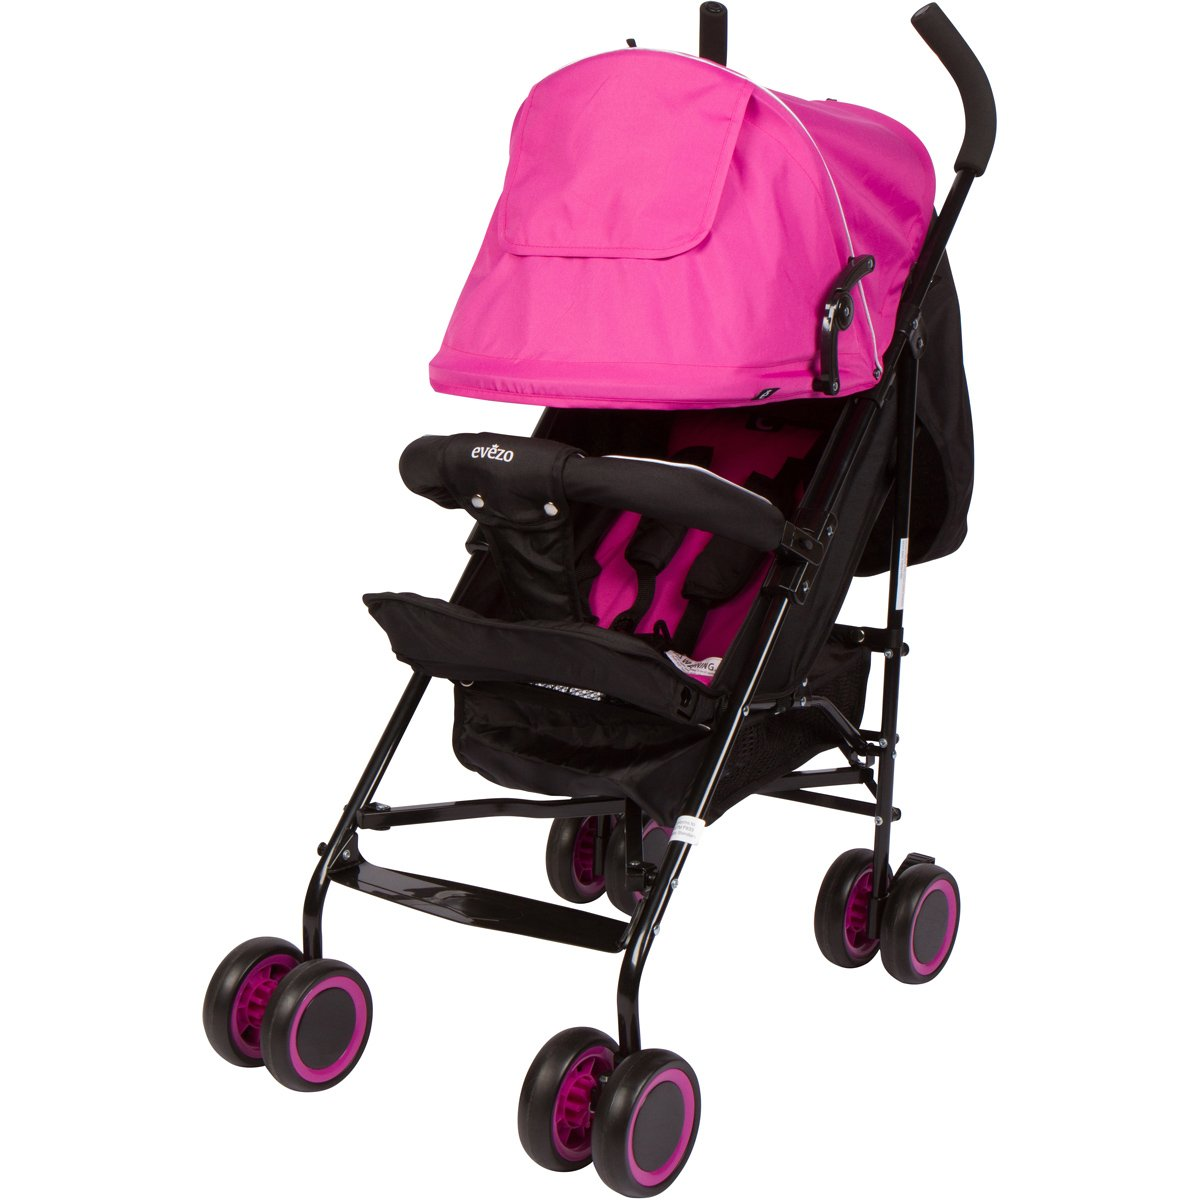 Evezo 2141A Full-Size Ultra Lightweight Umbrella Stroller, Reclining Seat, 5-Point Safety Harness, Canopy, Storage Bin (Hot Pink), 214-1A